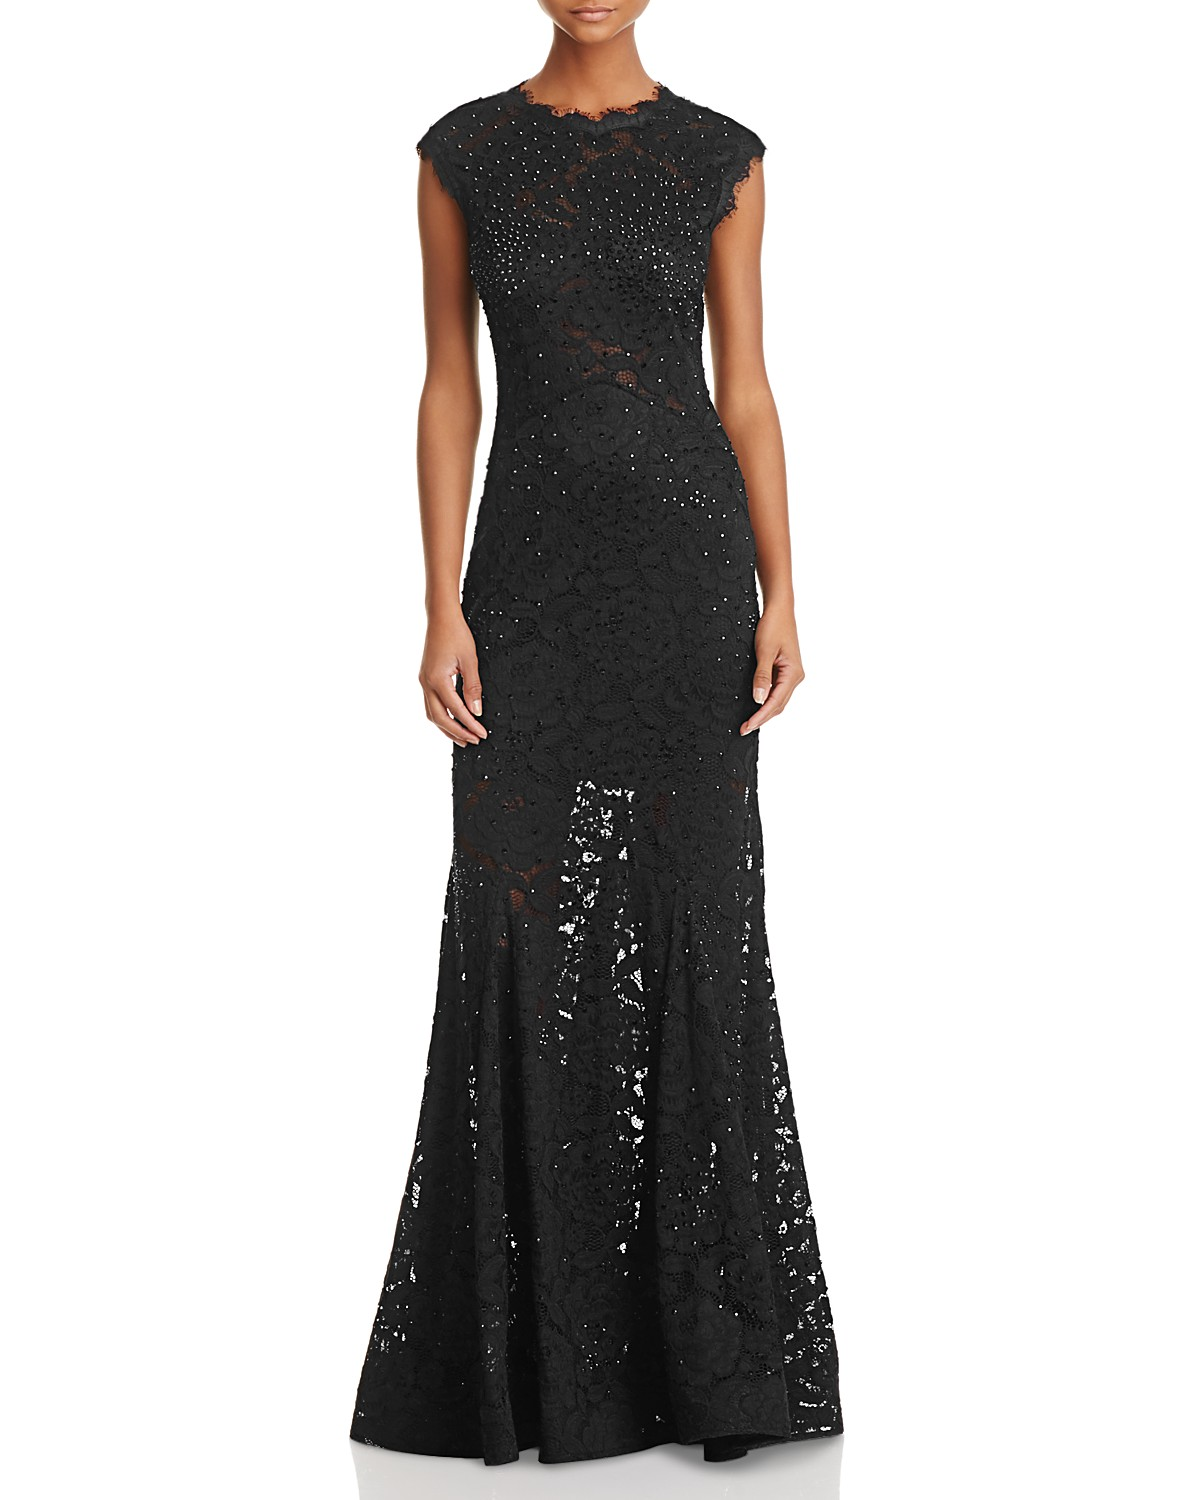 AQUA Embellished Lace Gown - 100% Exclusive | Bloomingdale\'s